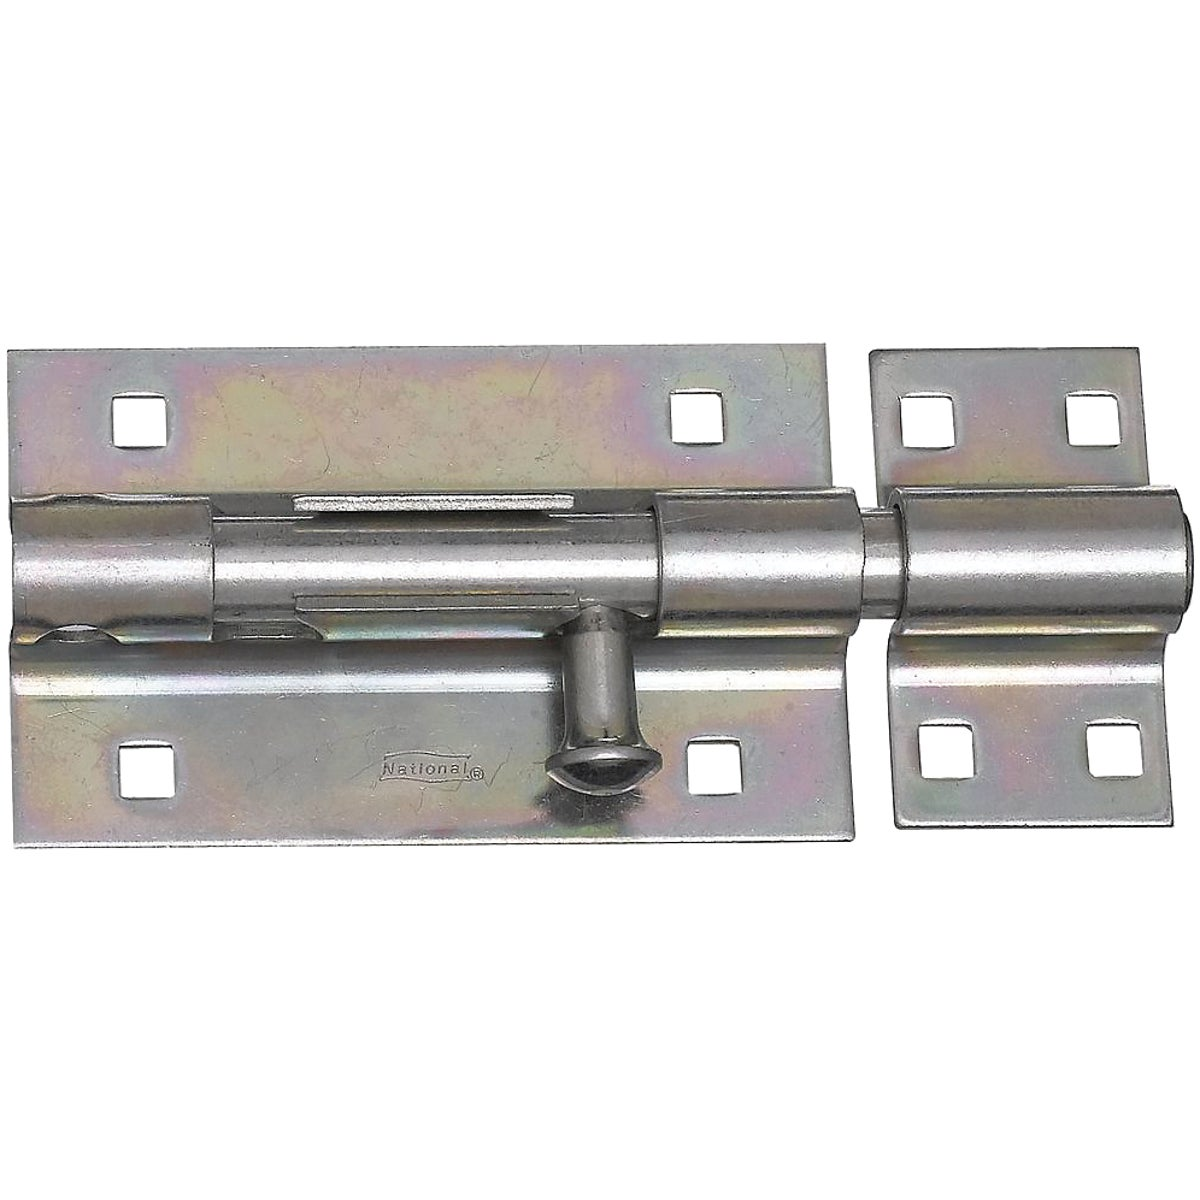 "5"" HEAVY BARREL BOLT - N151118 by National Mfg Co"